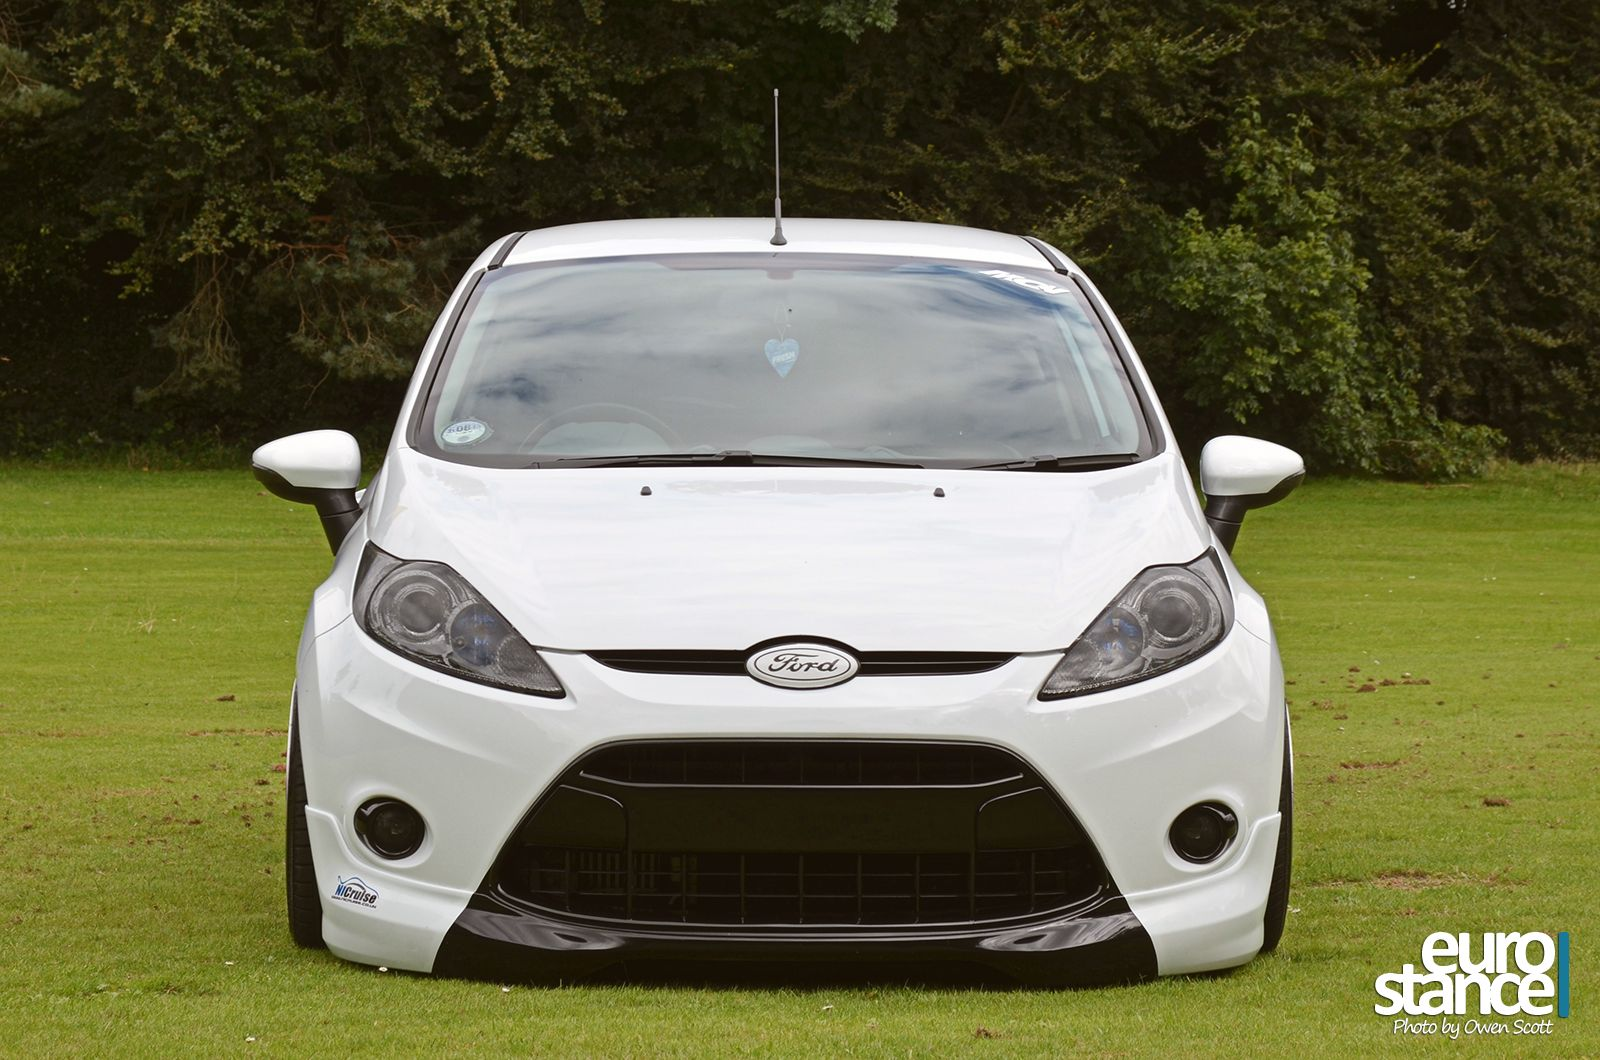 Stephen chambers mk7 ford fiesta on hydraulics stance ford street stance pinterest ford sports cars and cars